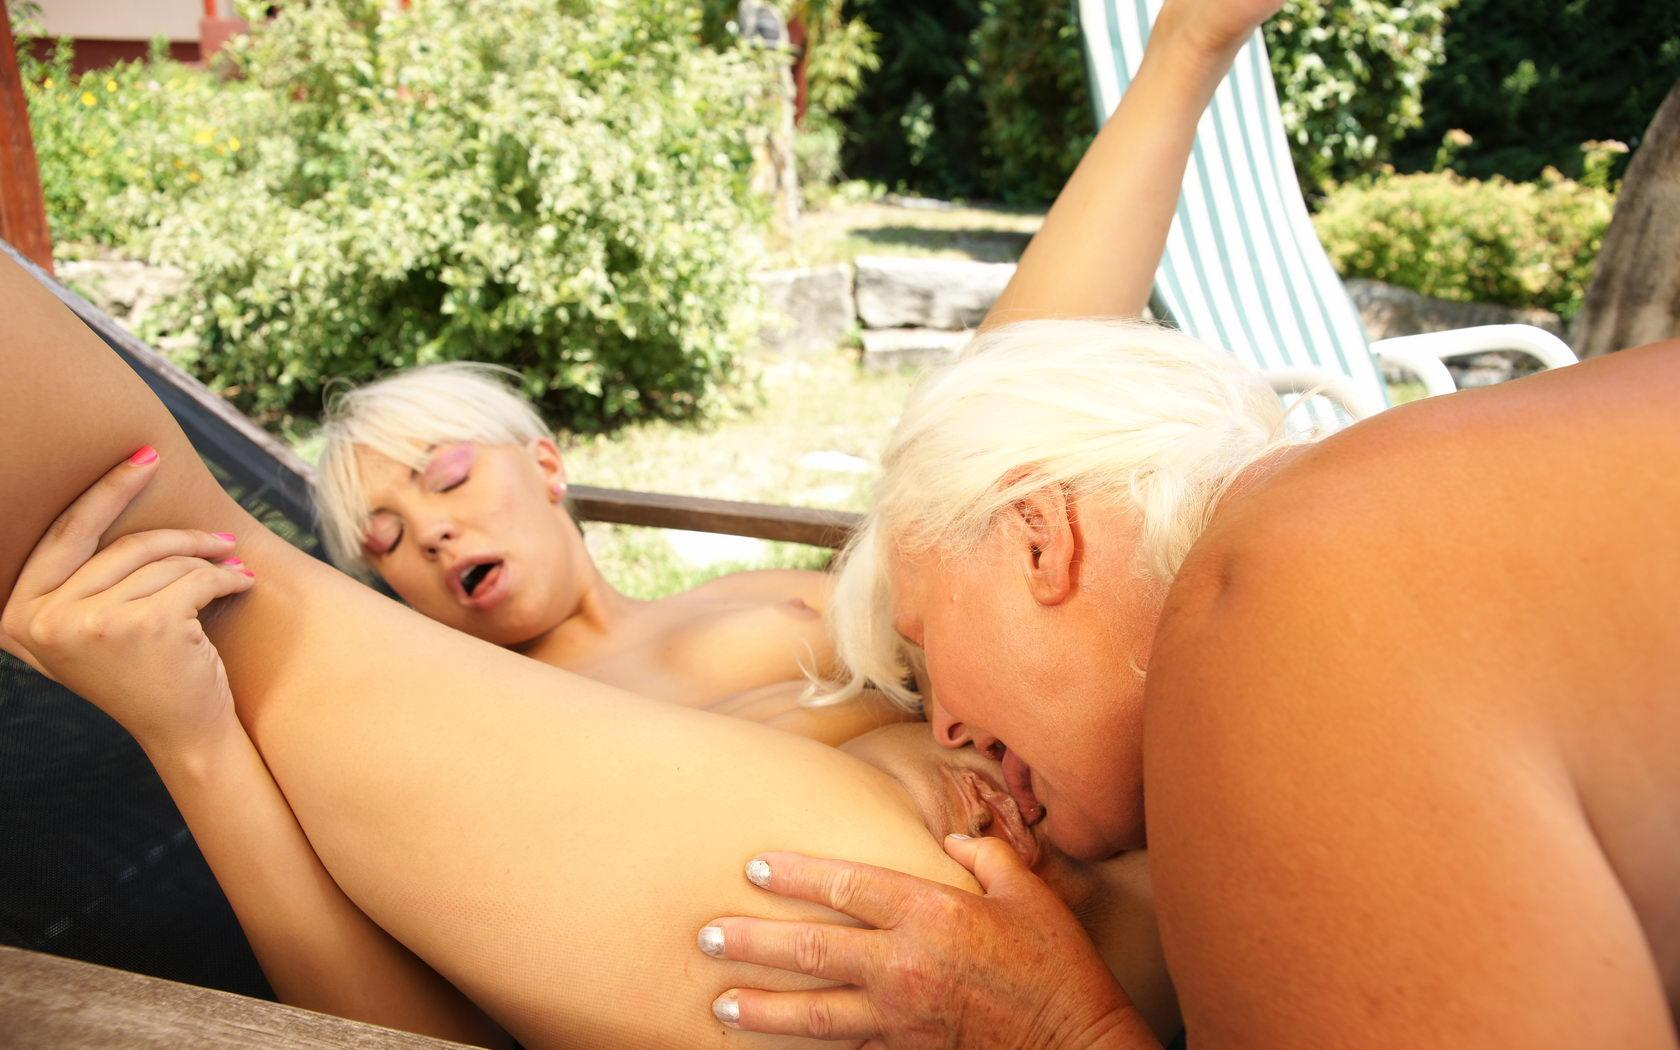 Tara a lusty granny sucking a guy that could be her sun